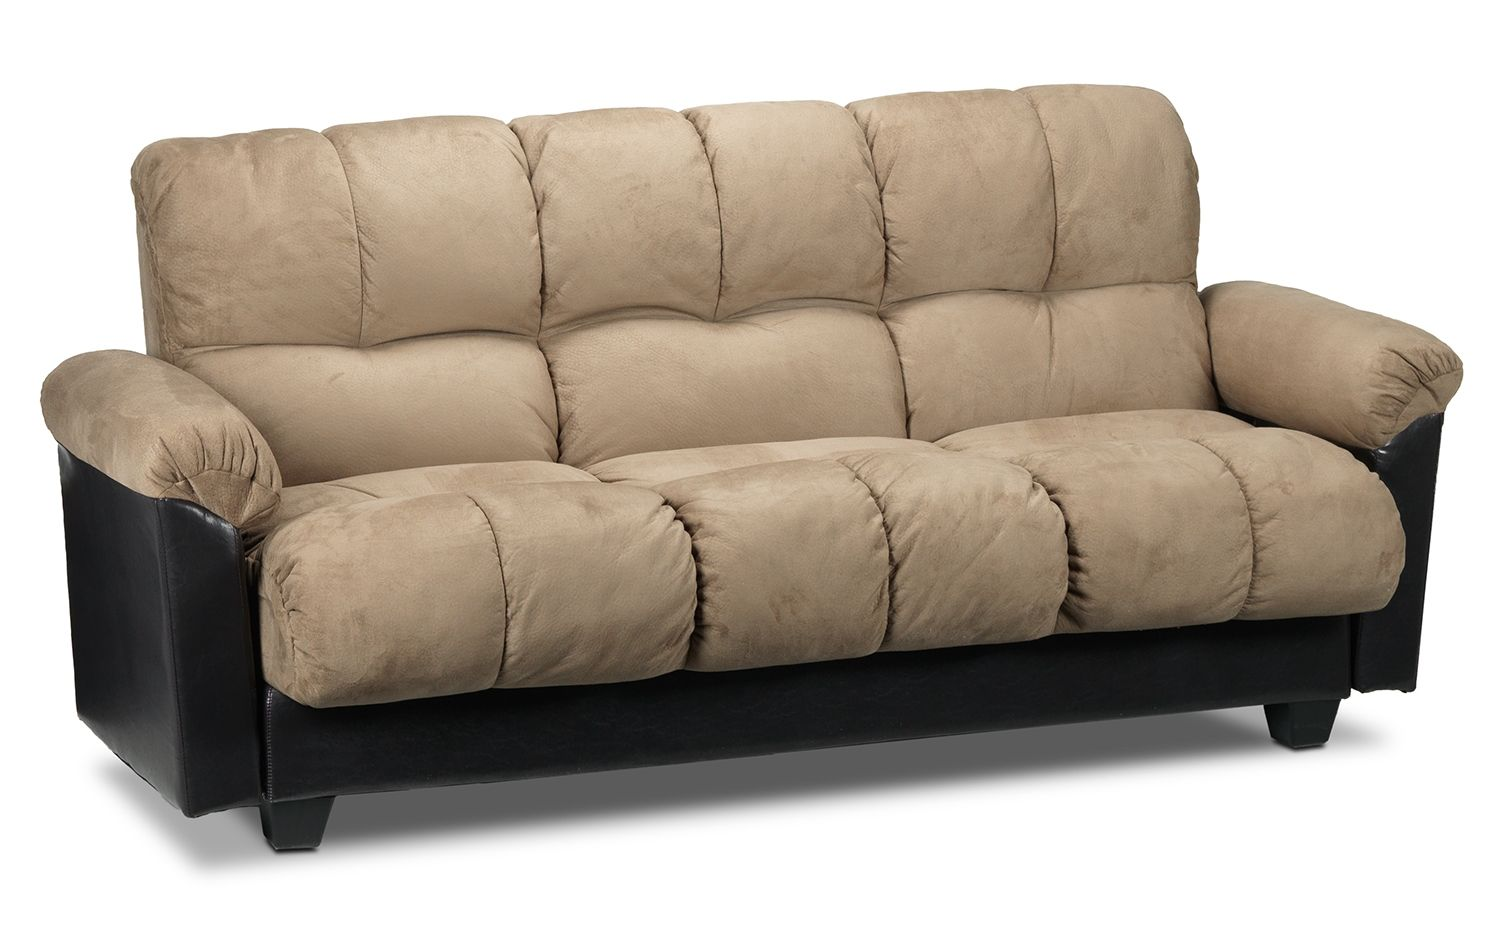 leons sofa beds mattress for sectional bed thesofa